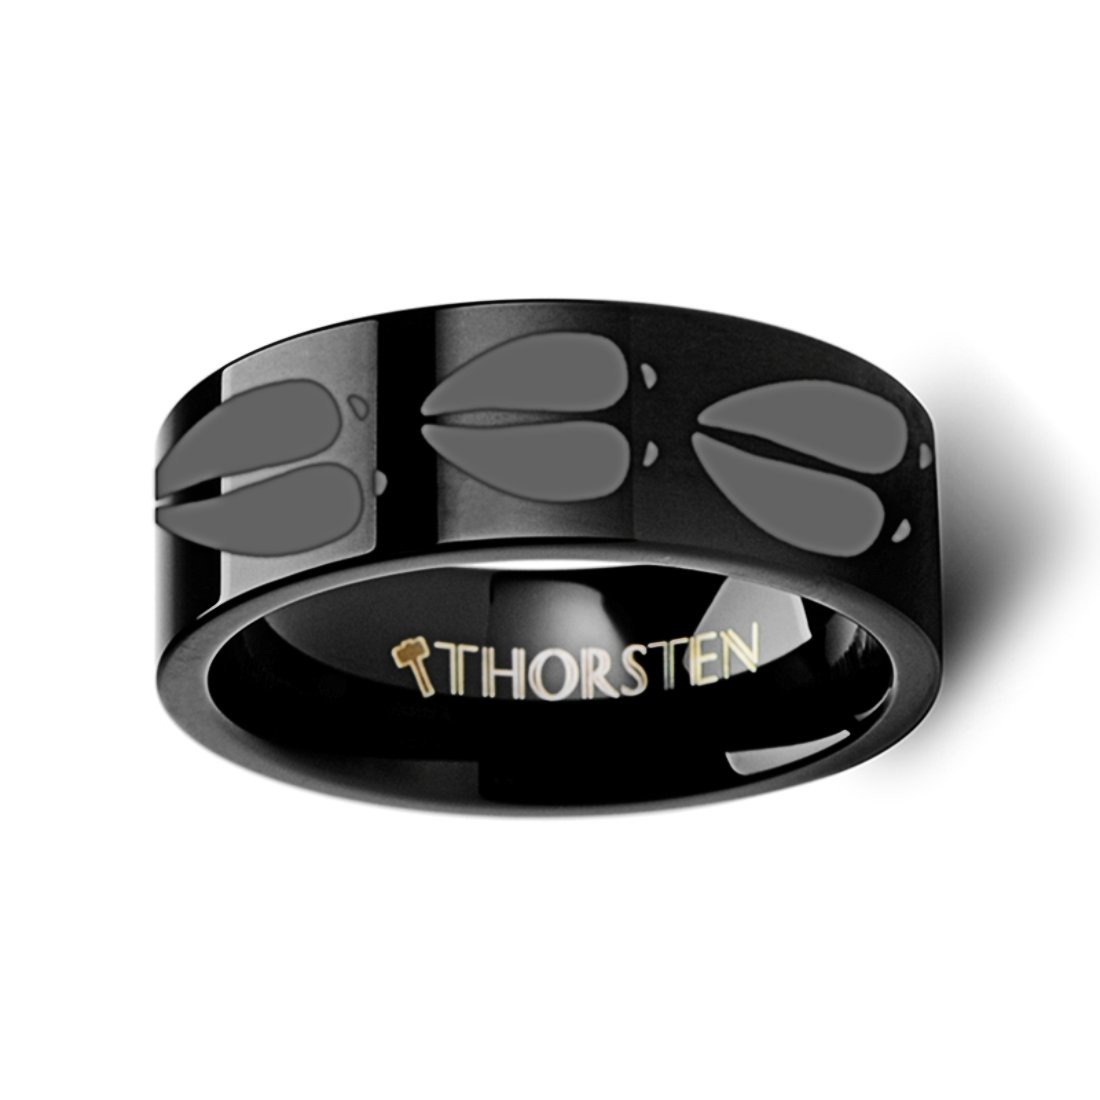 Thorsten Nature Animal Wildlife Deer Track Print Pattern Ring Flat Black Tungsten Ring 4mm Wide Wedding Band from Roy Rose Jewelry